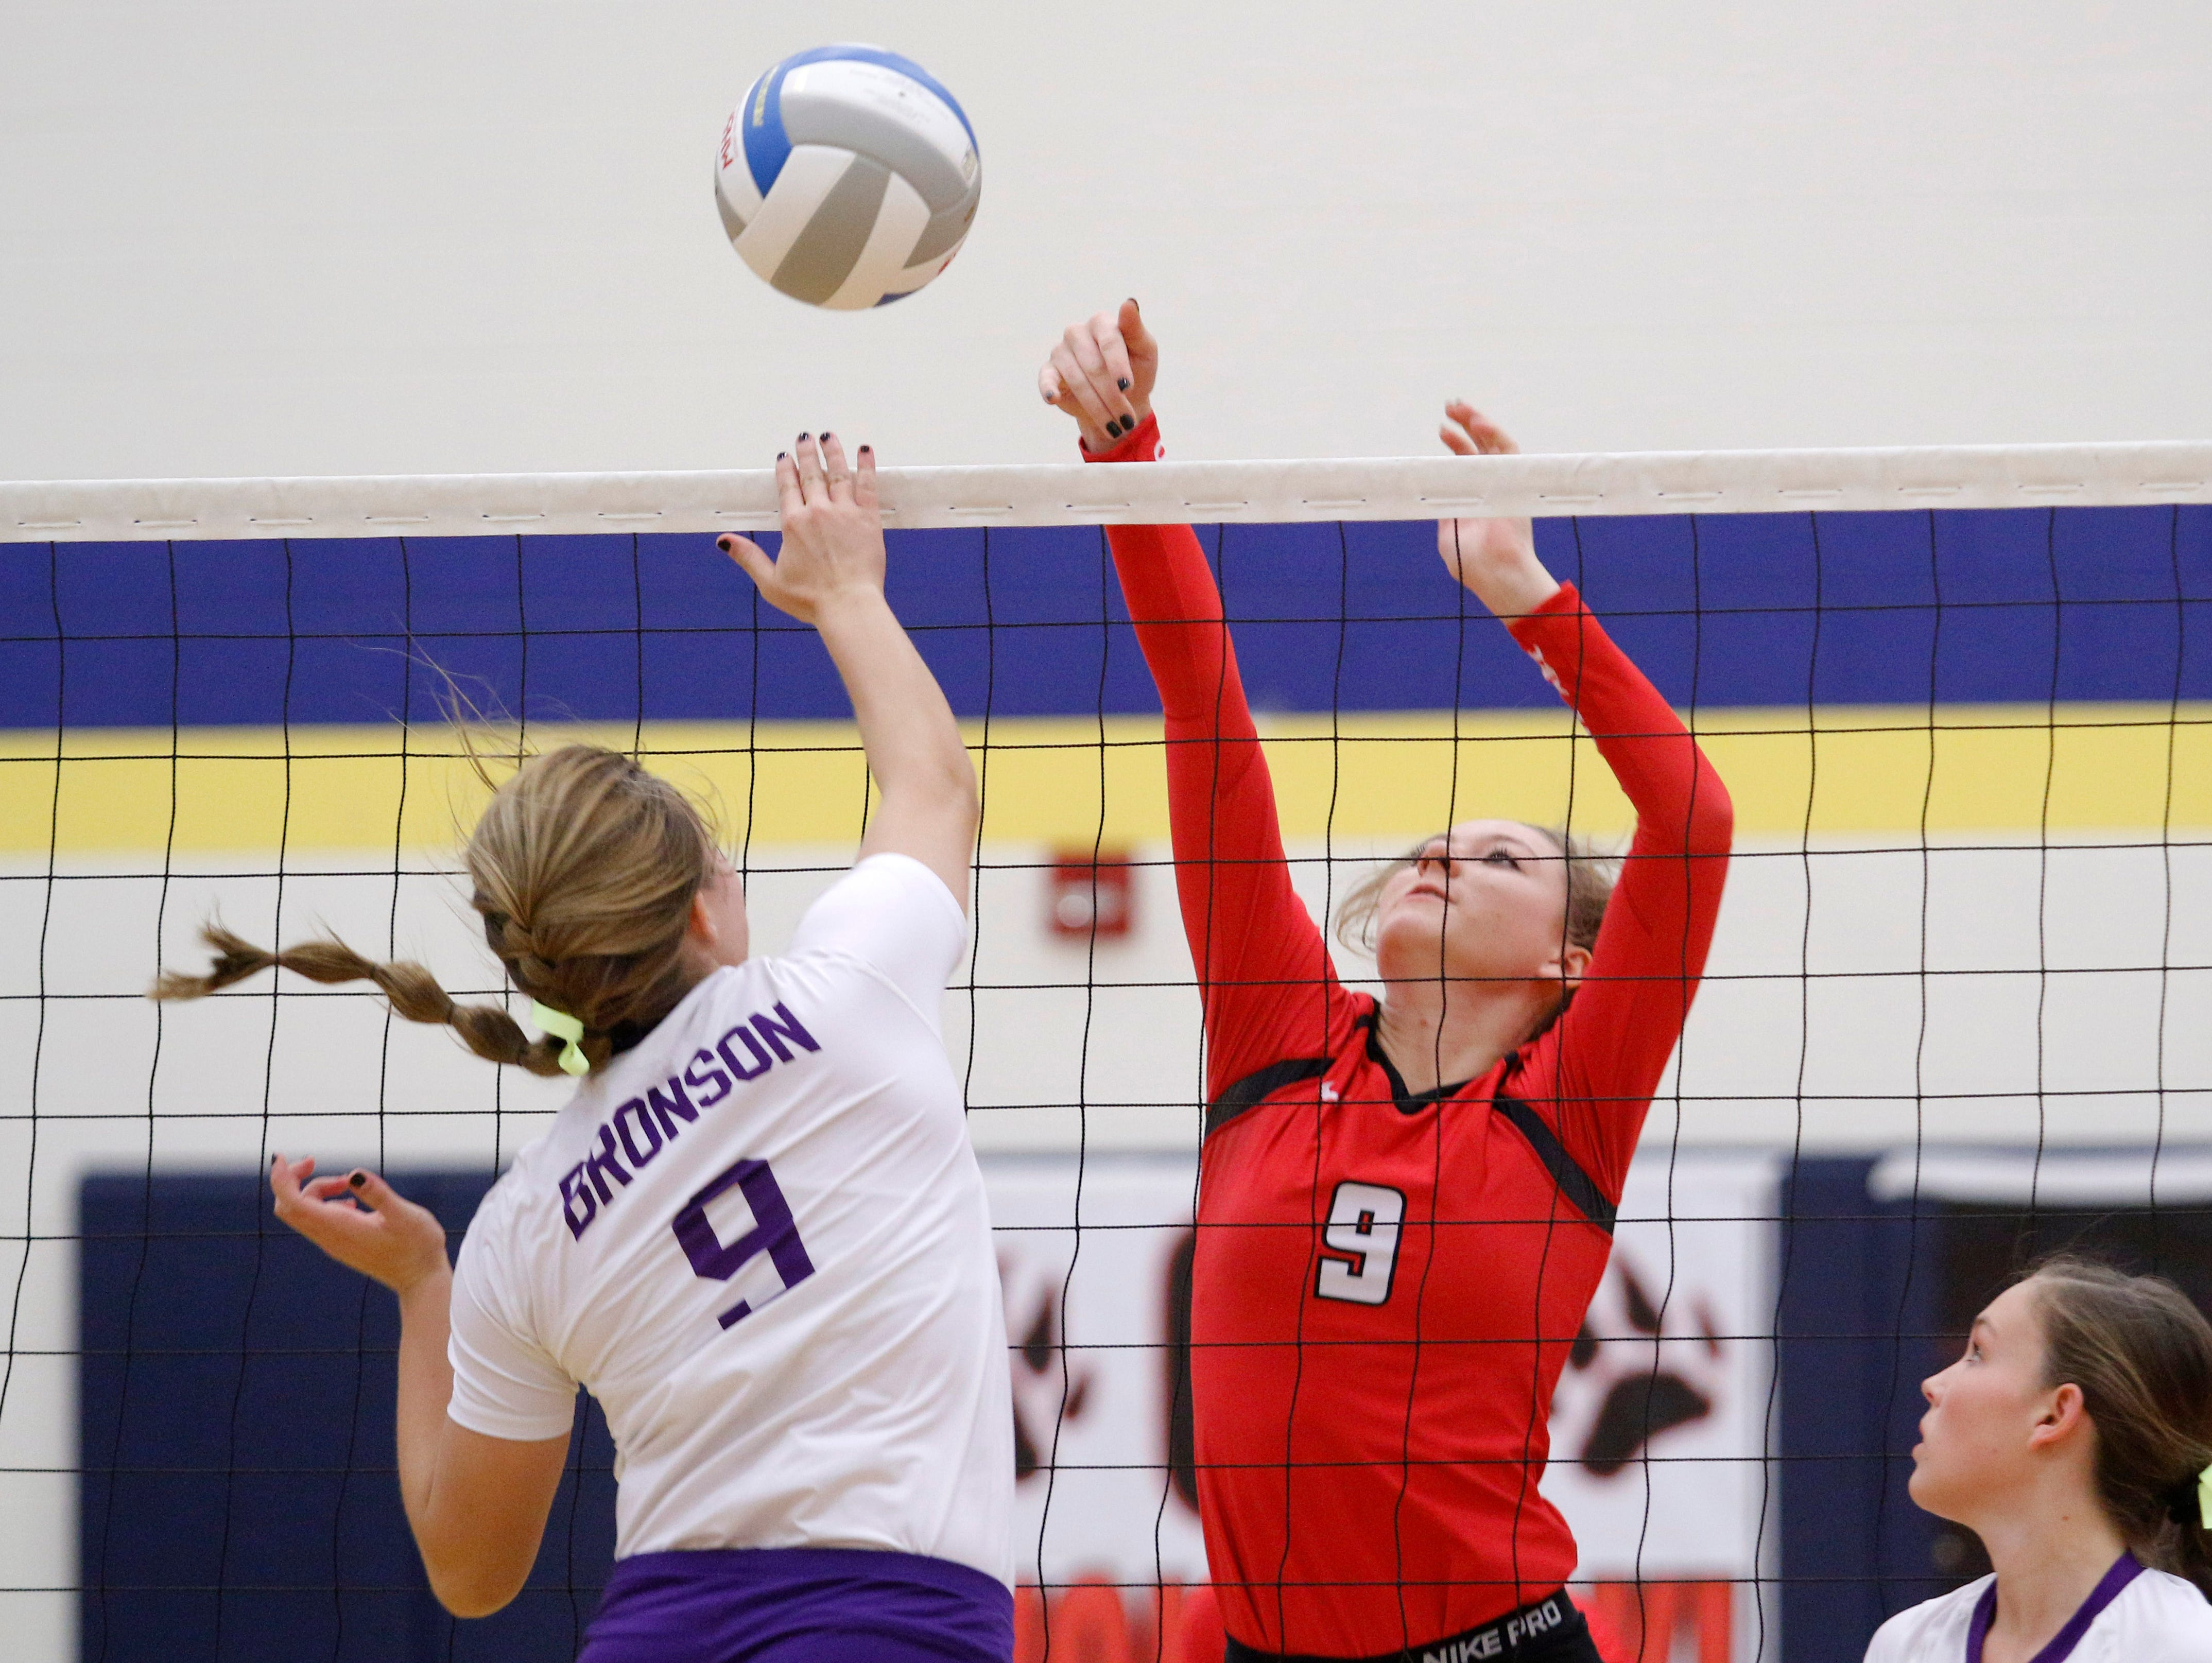 Laingsburg's Maya Ferland, right, and Bronson's Kiana Mayer vie for the ball at the net during their MHSAA quarterfinal game Tuesday, Nov. 15, 2016, in Portage, Mich.